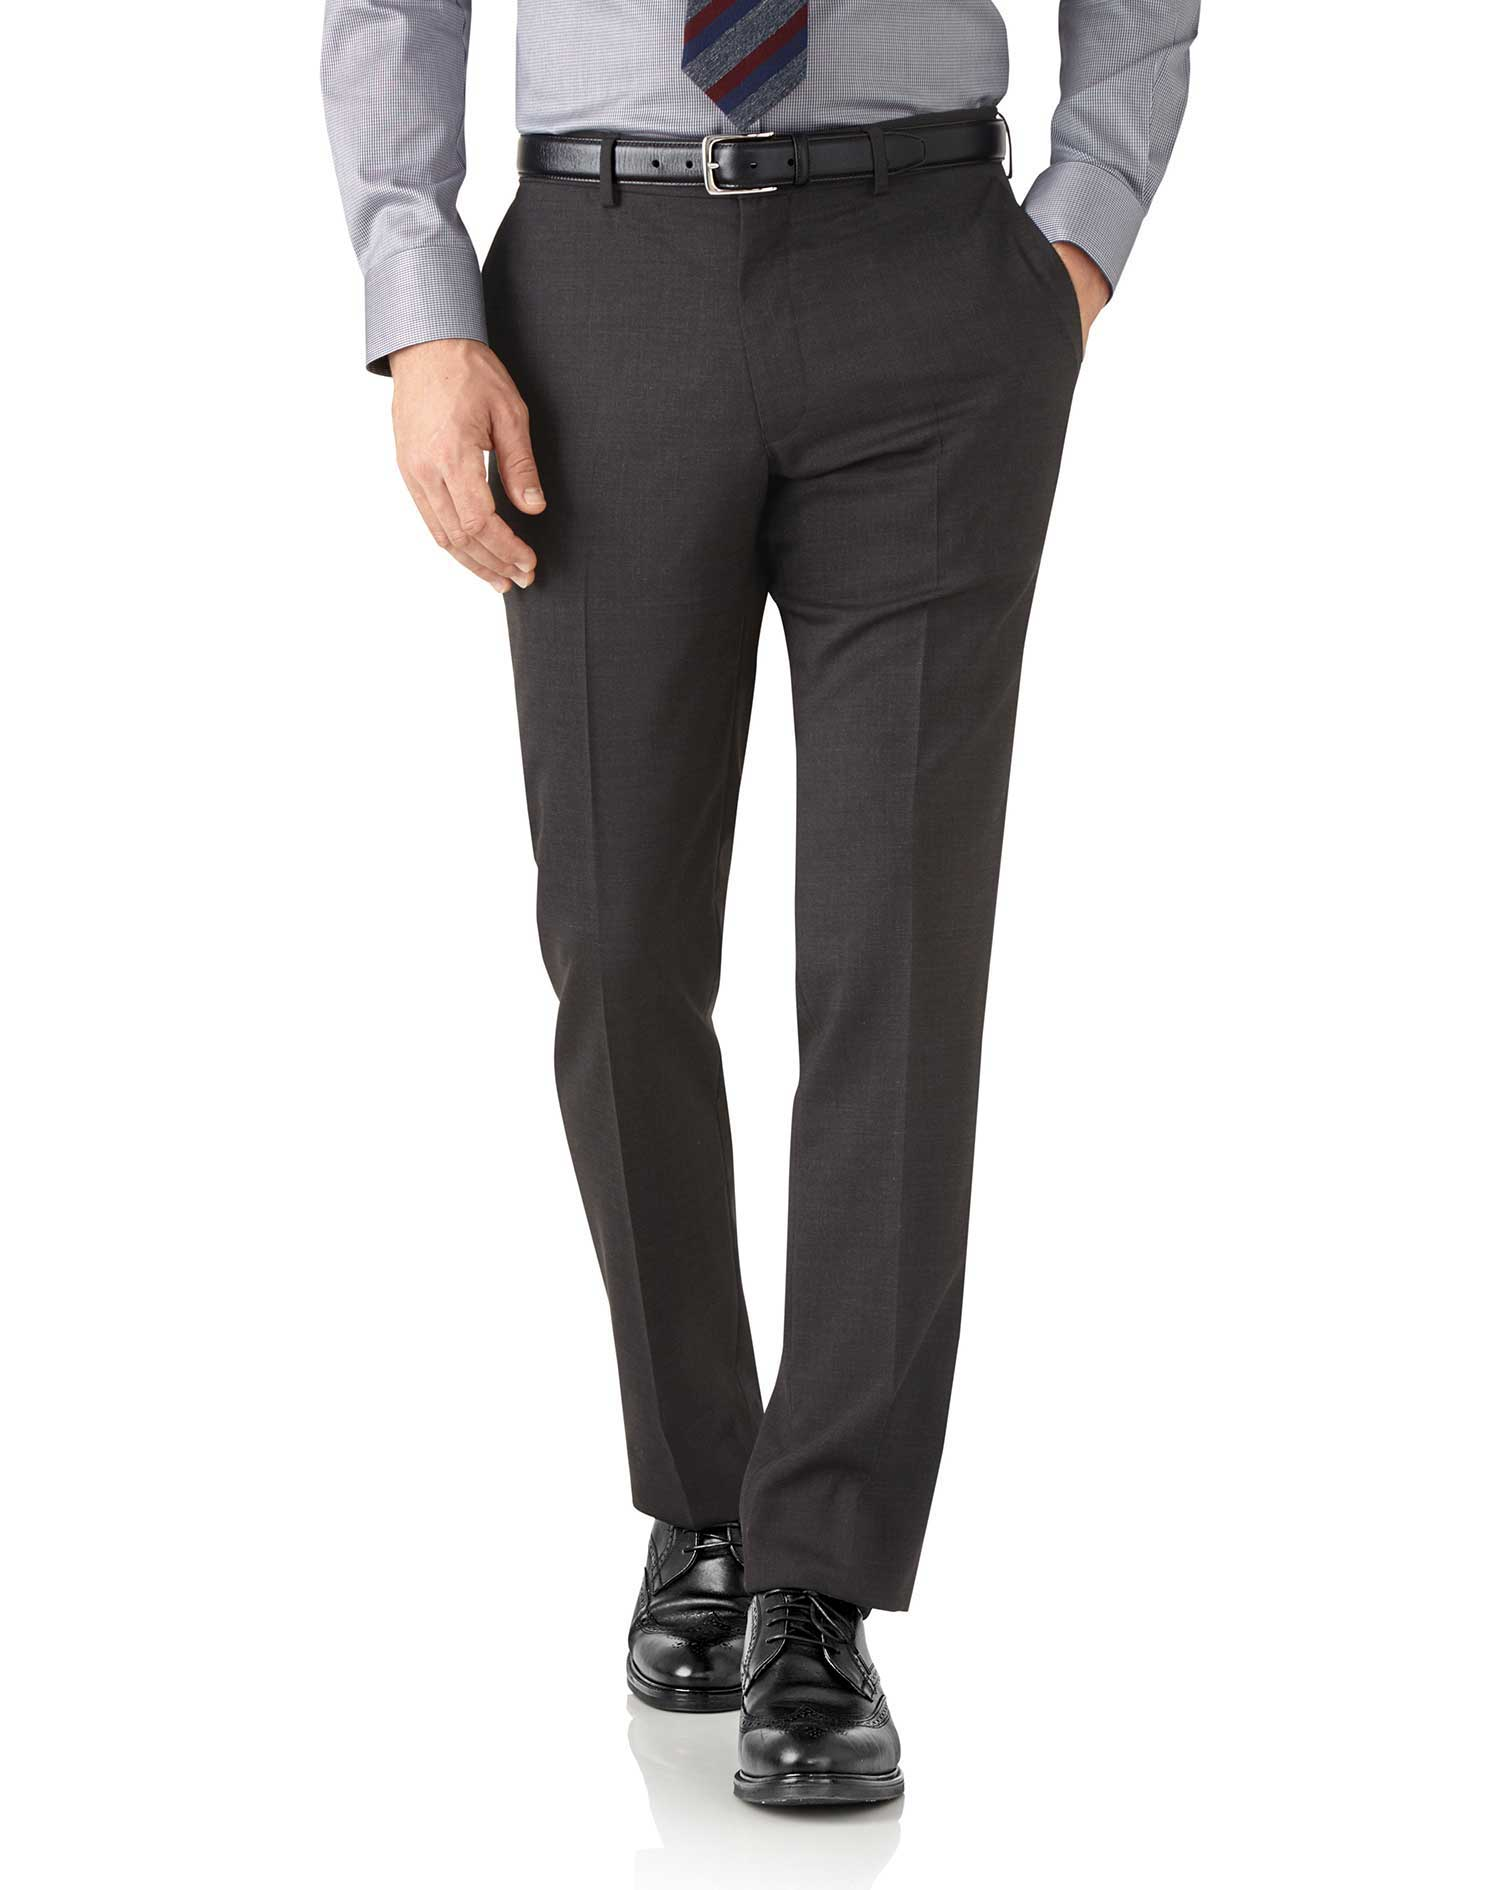 Charcoal Slim Fit Performance Suit Trousers Size W36 L32 by Charles Tyrwhitt